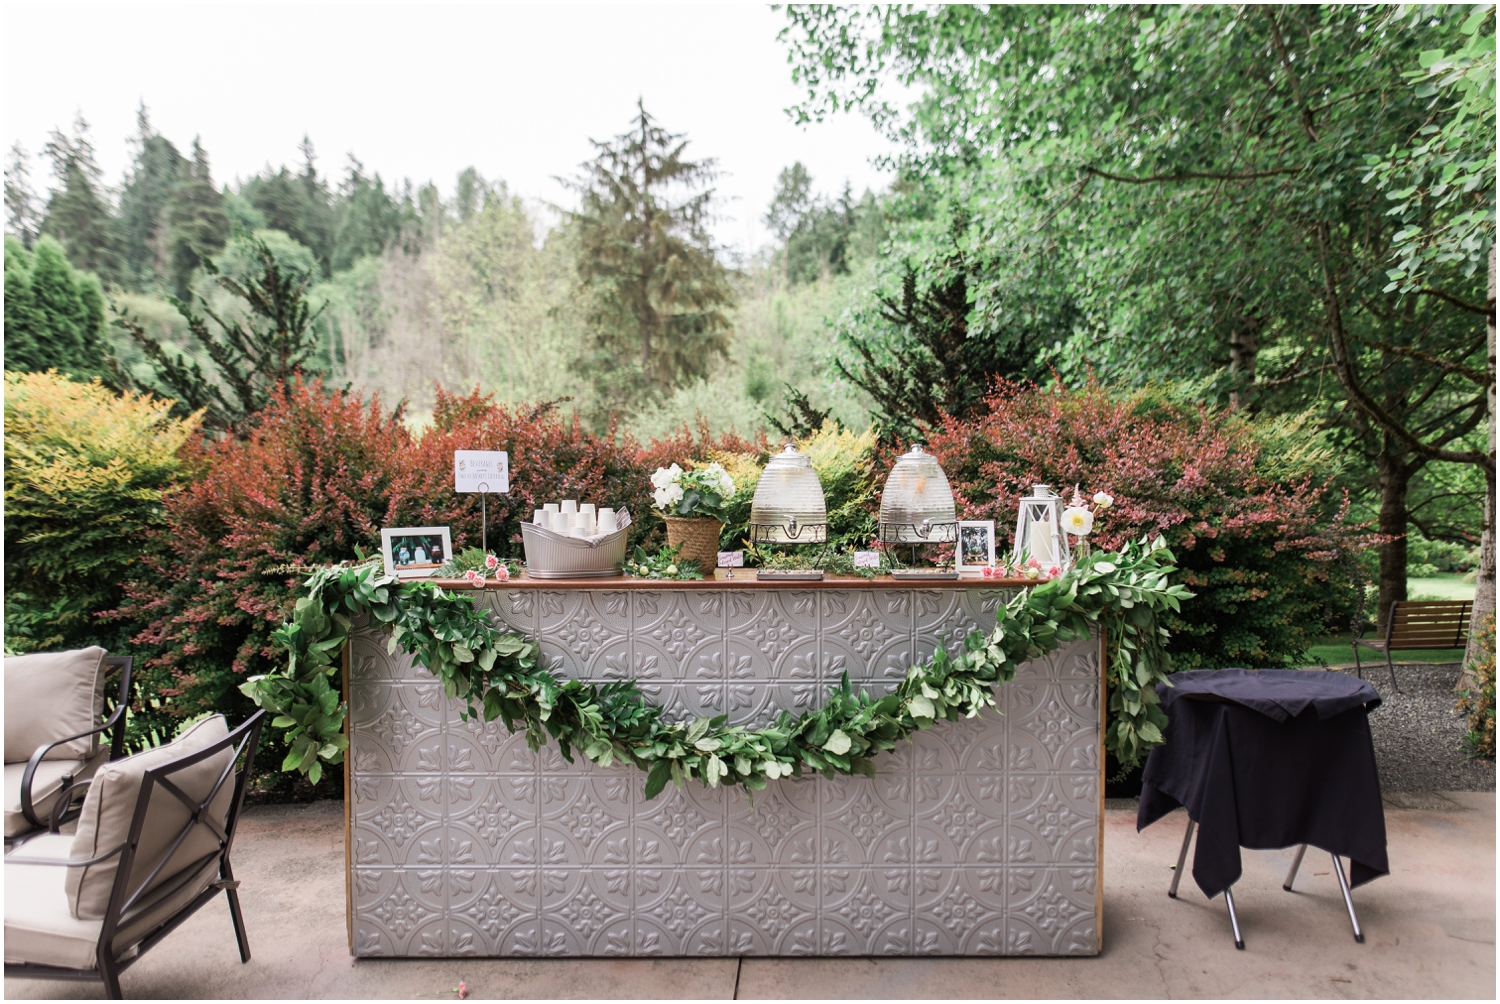 Jardin Del sol Wedding Venue, Snohomish Wedding Photography, sno